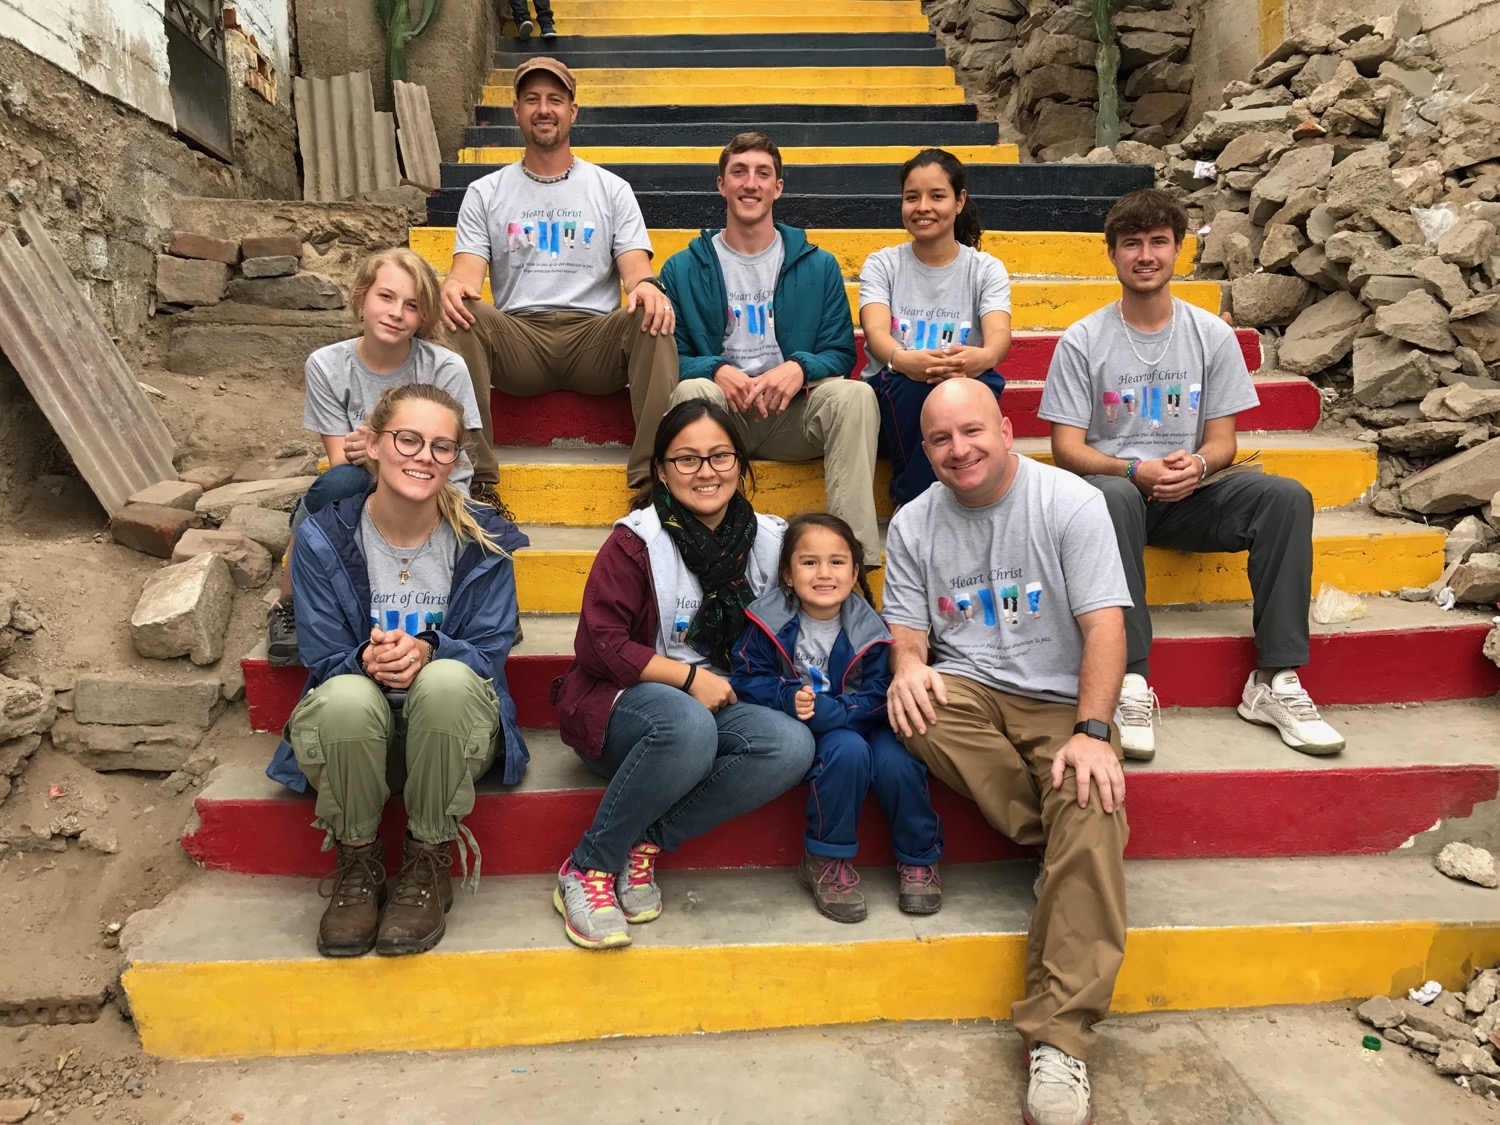 It was a joy to again work with Heart of Christ Ministries in Caja de Aquas, Peru